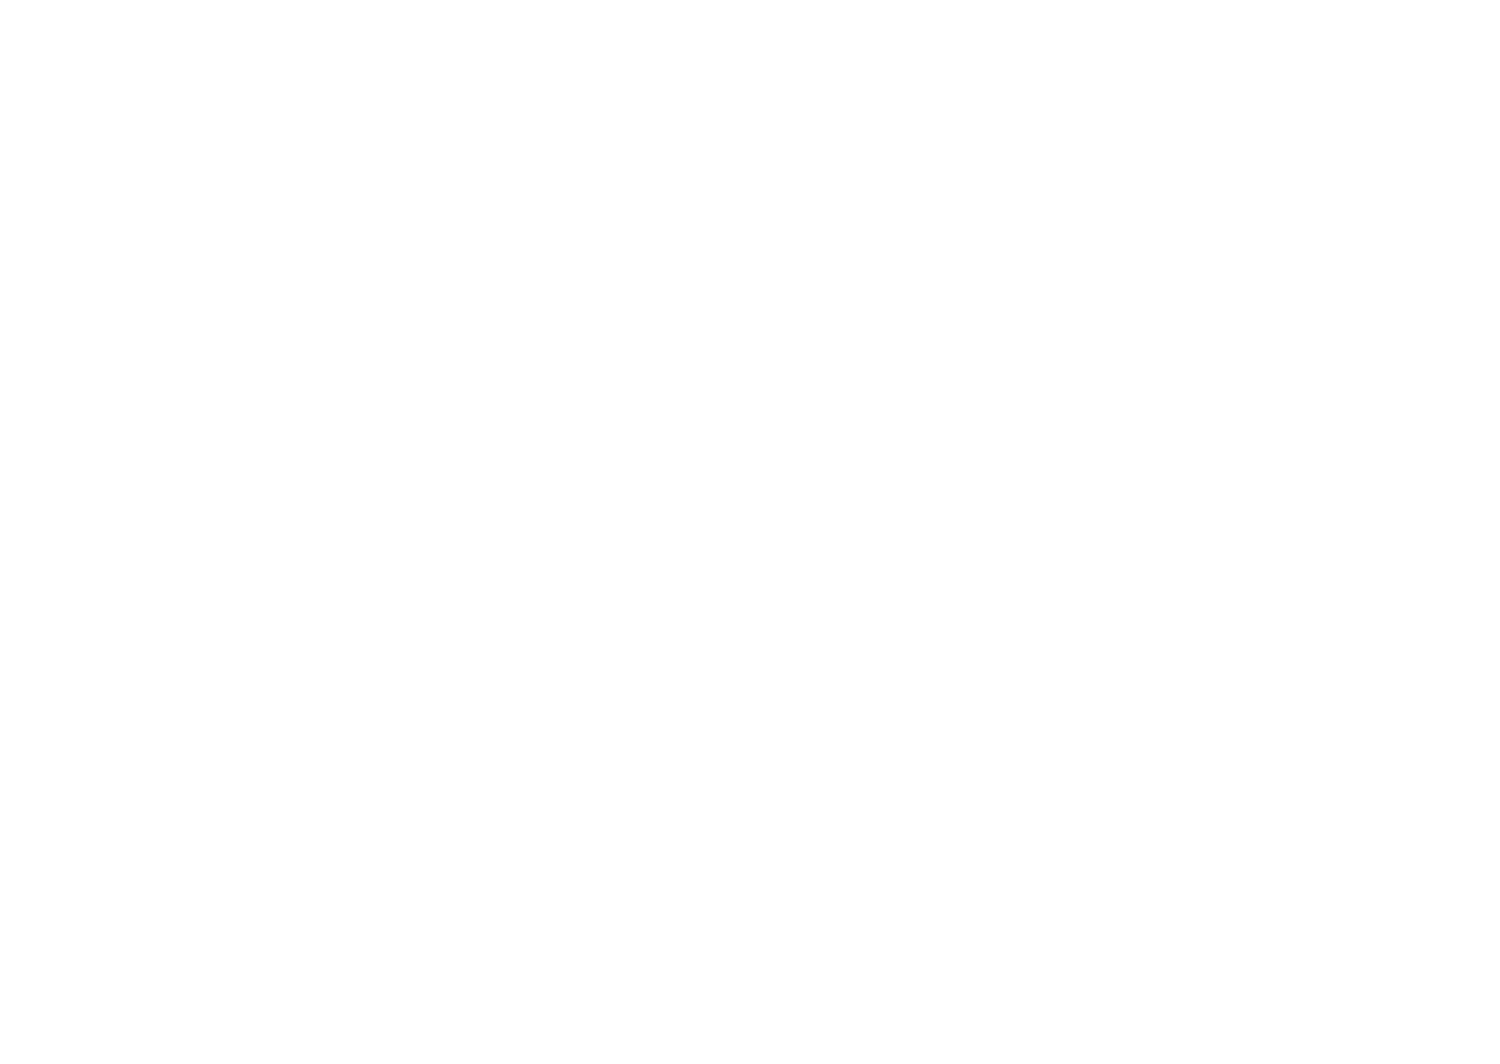 Waibel & Partner